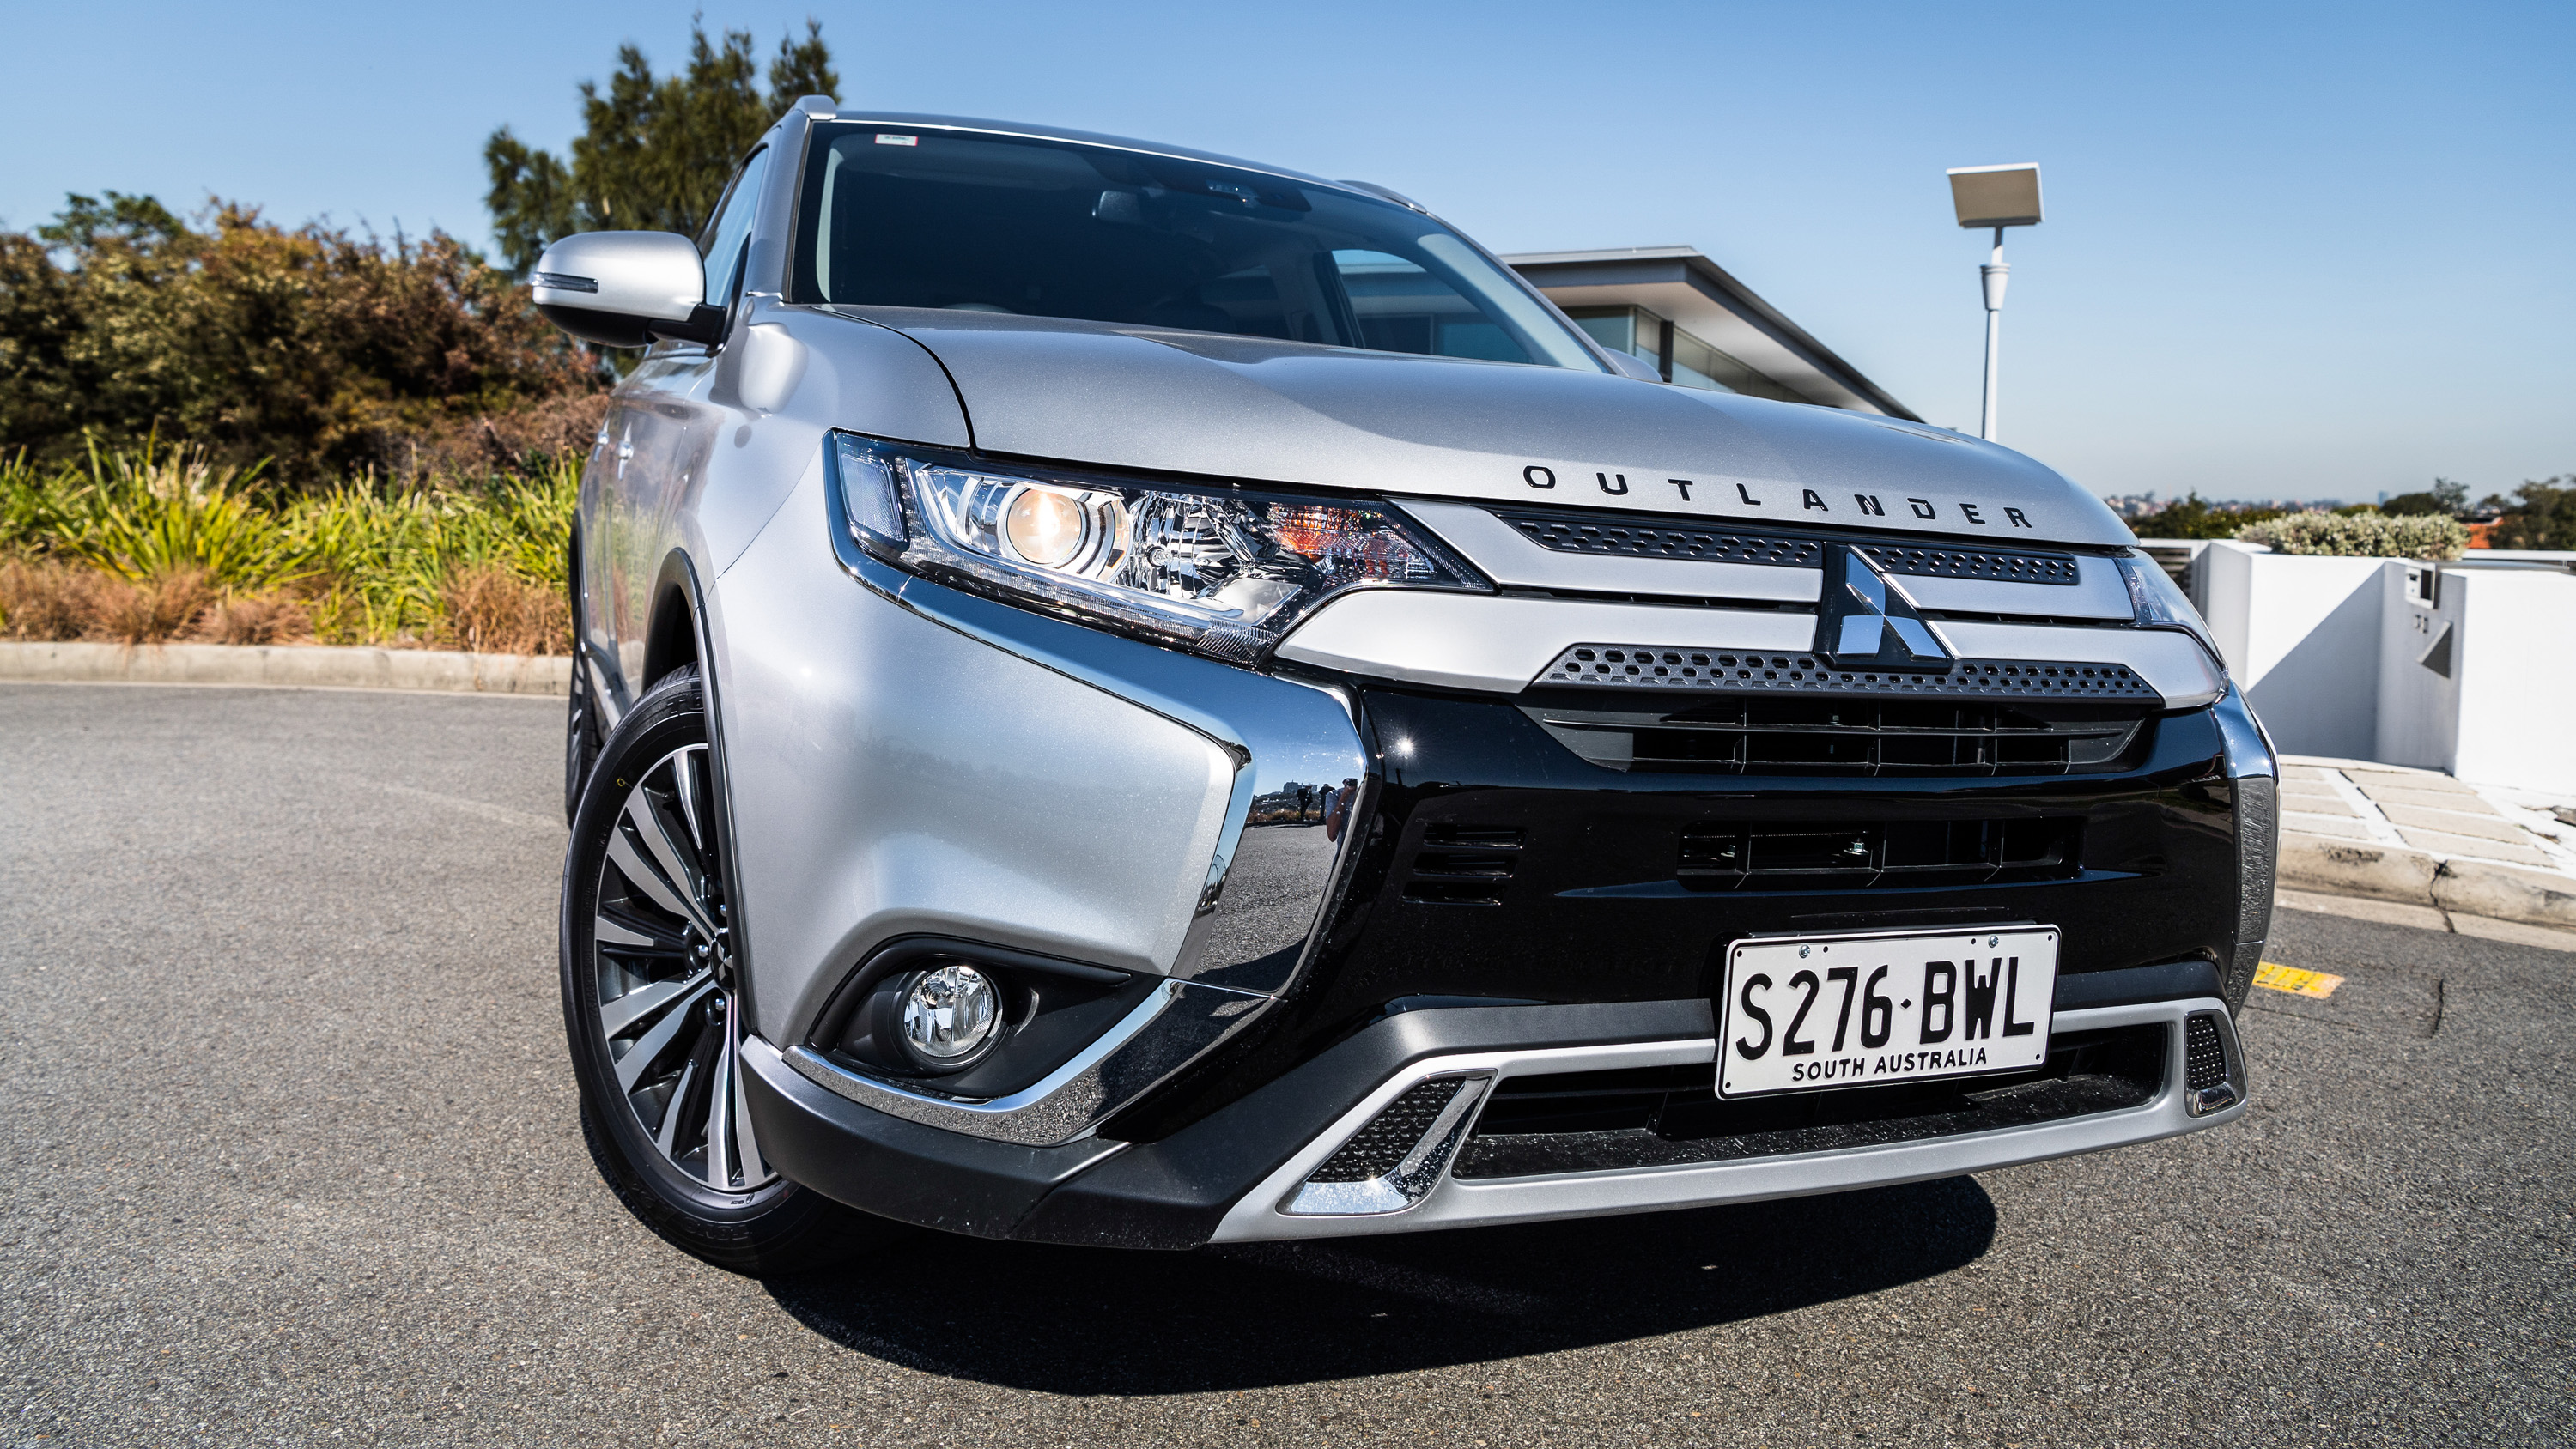 mitsubishi-outlander-2020-co-gi-khac-biet-so-voi-cac-doi-thu